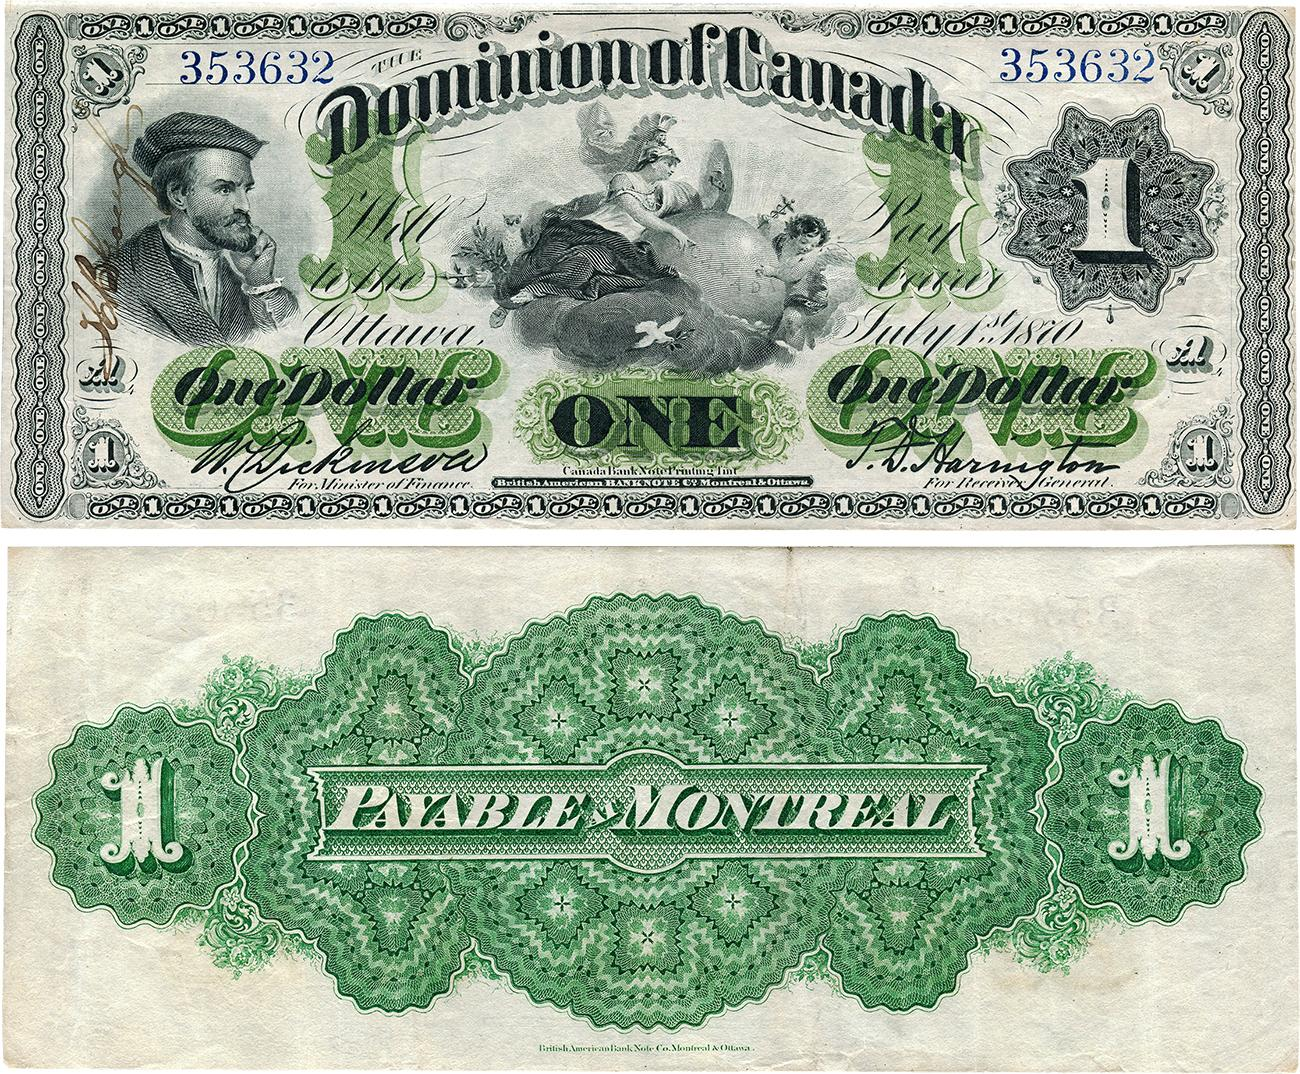 ancien billet de banque canadien